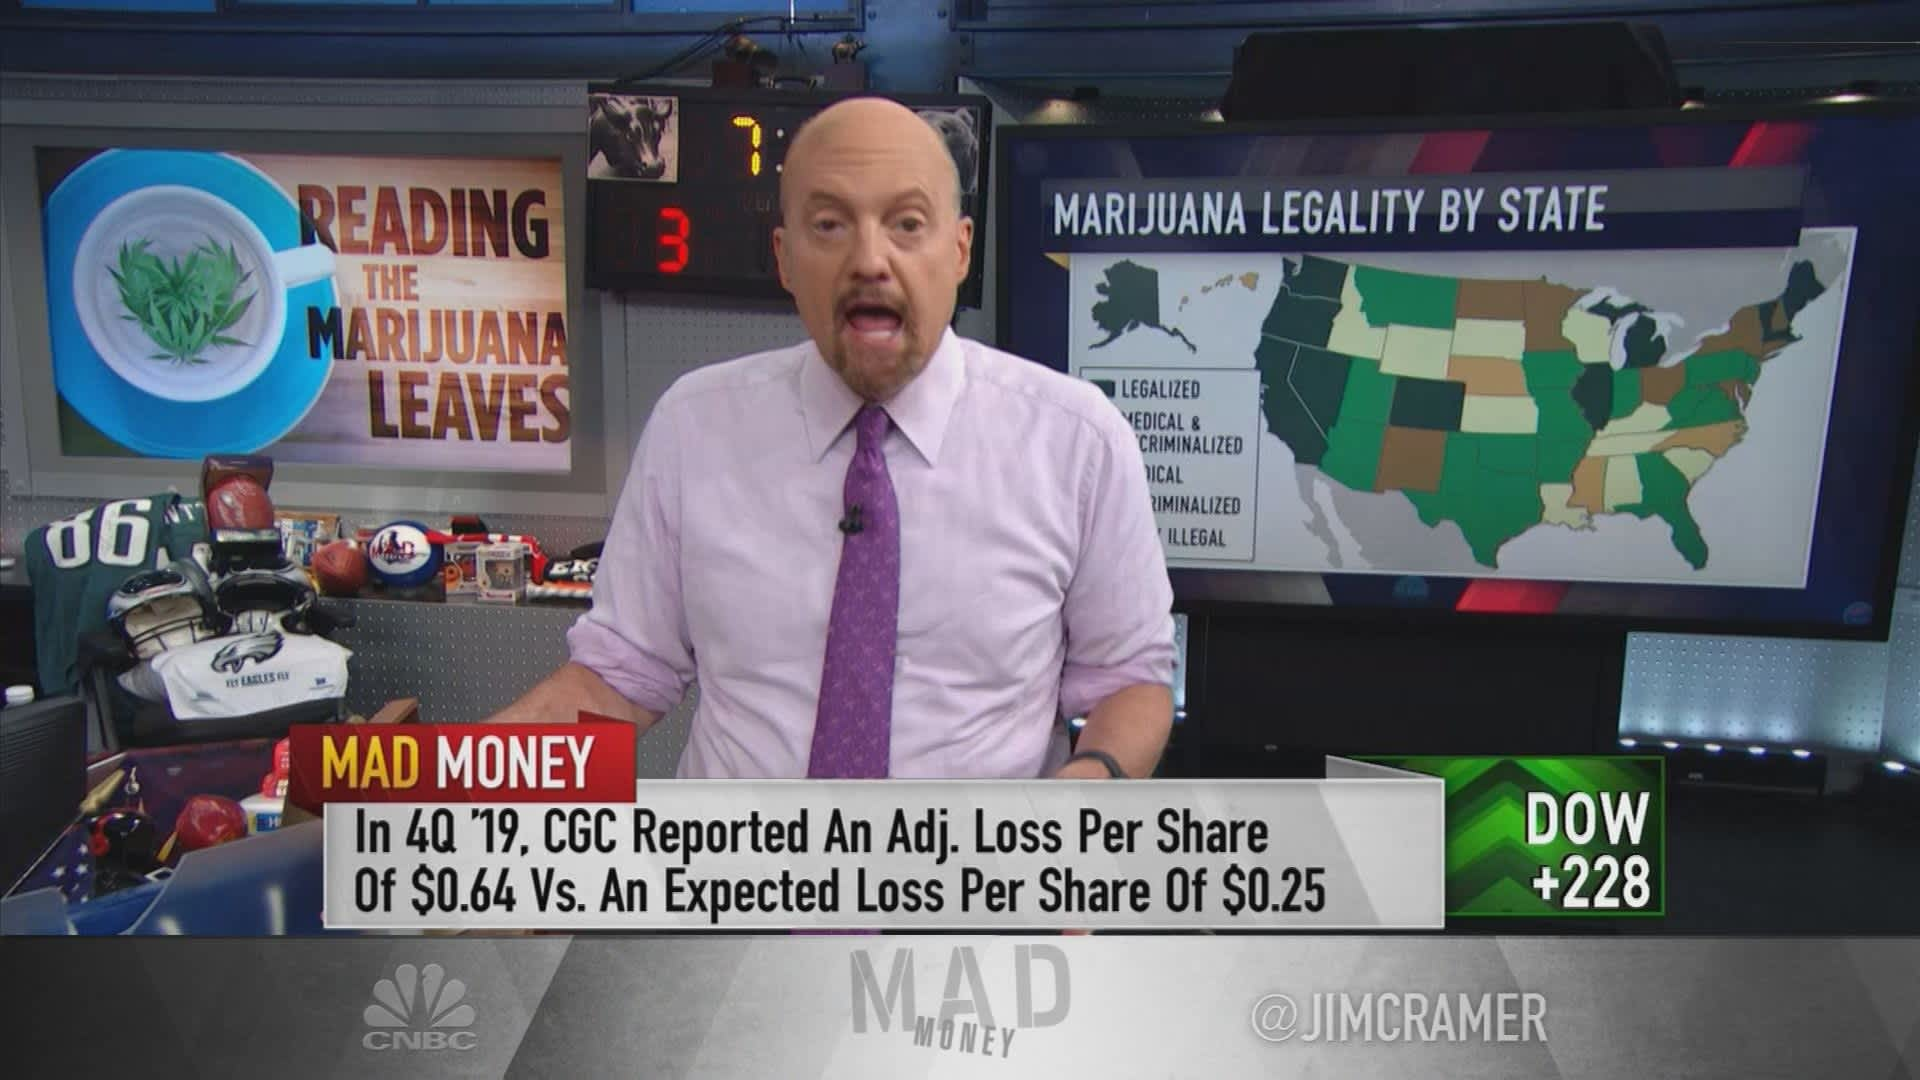 There has been a paradigm shift in the weed industry, Jim Cramer says